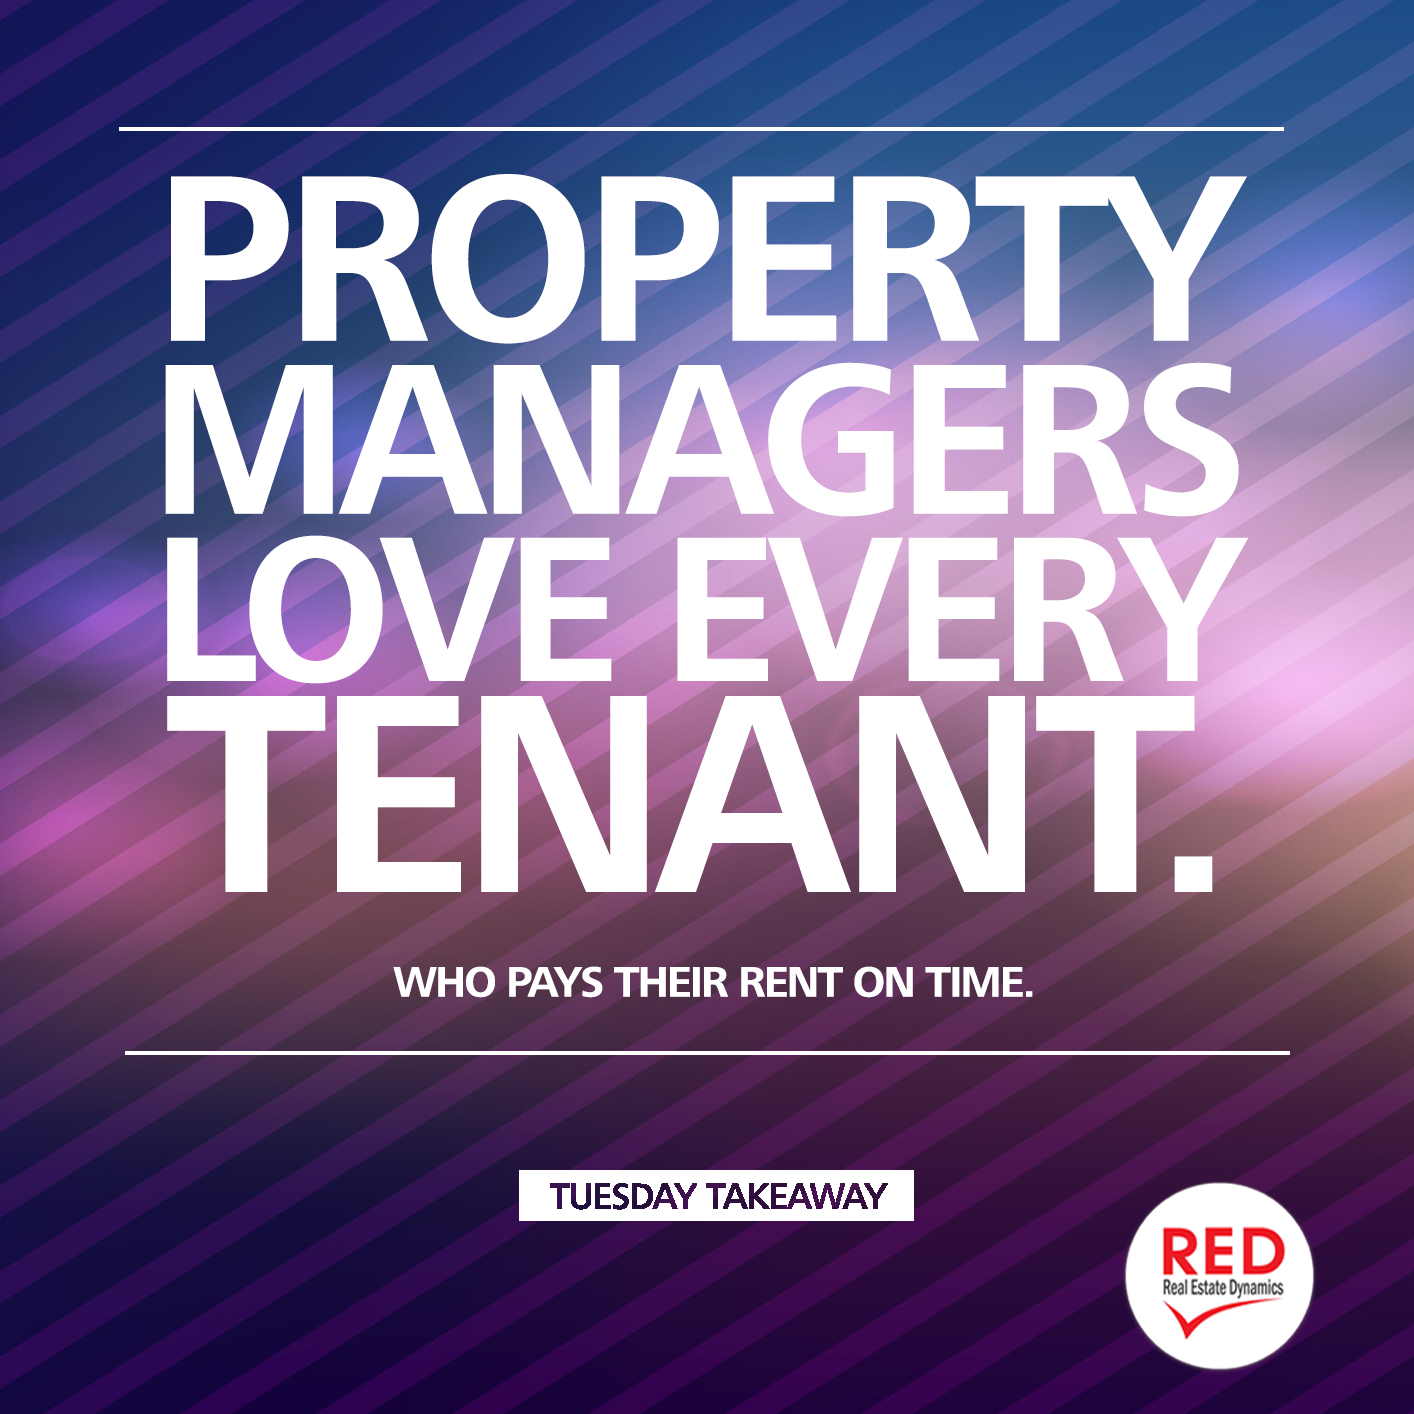 Apartment Leasing Companies: Property Managers Love Every Tenant